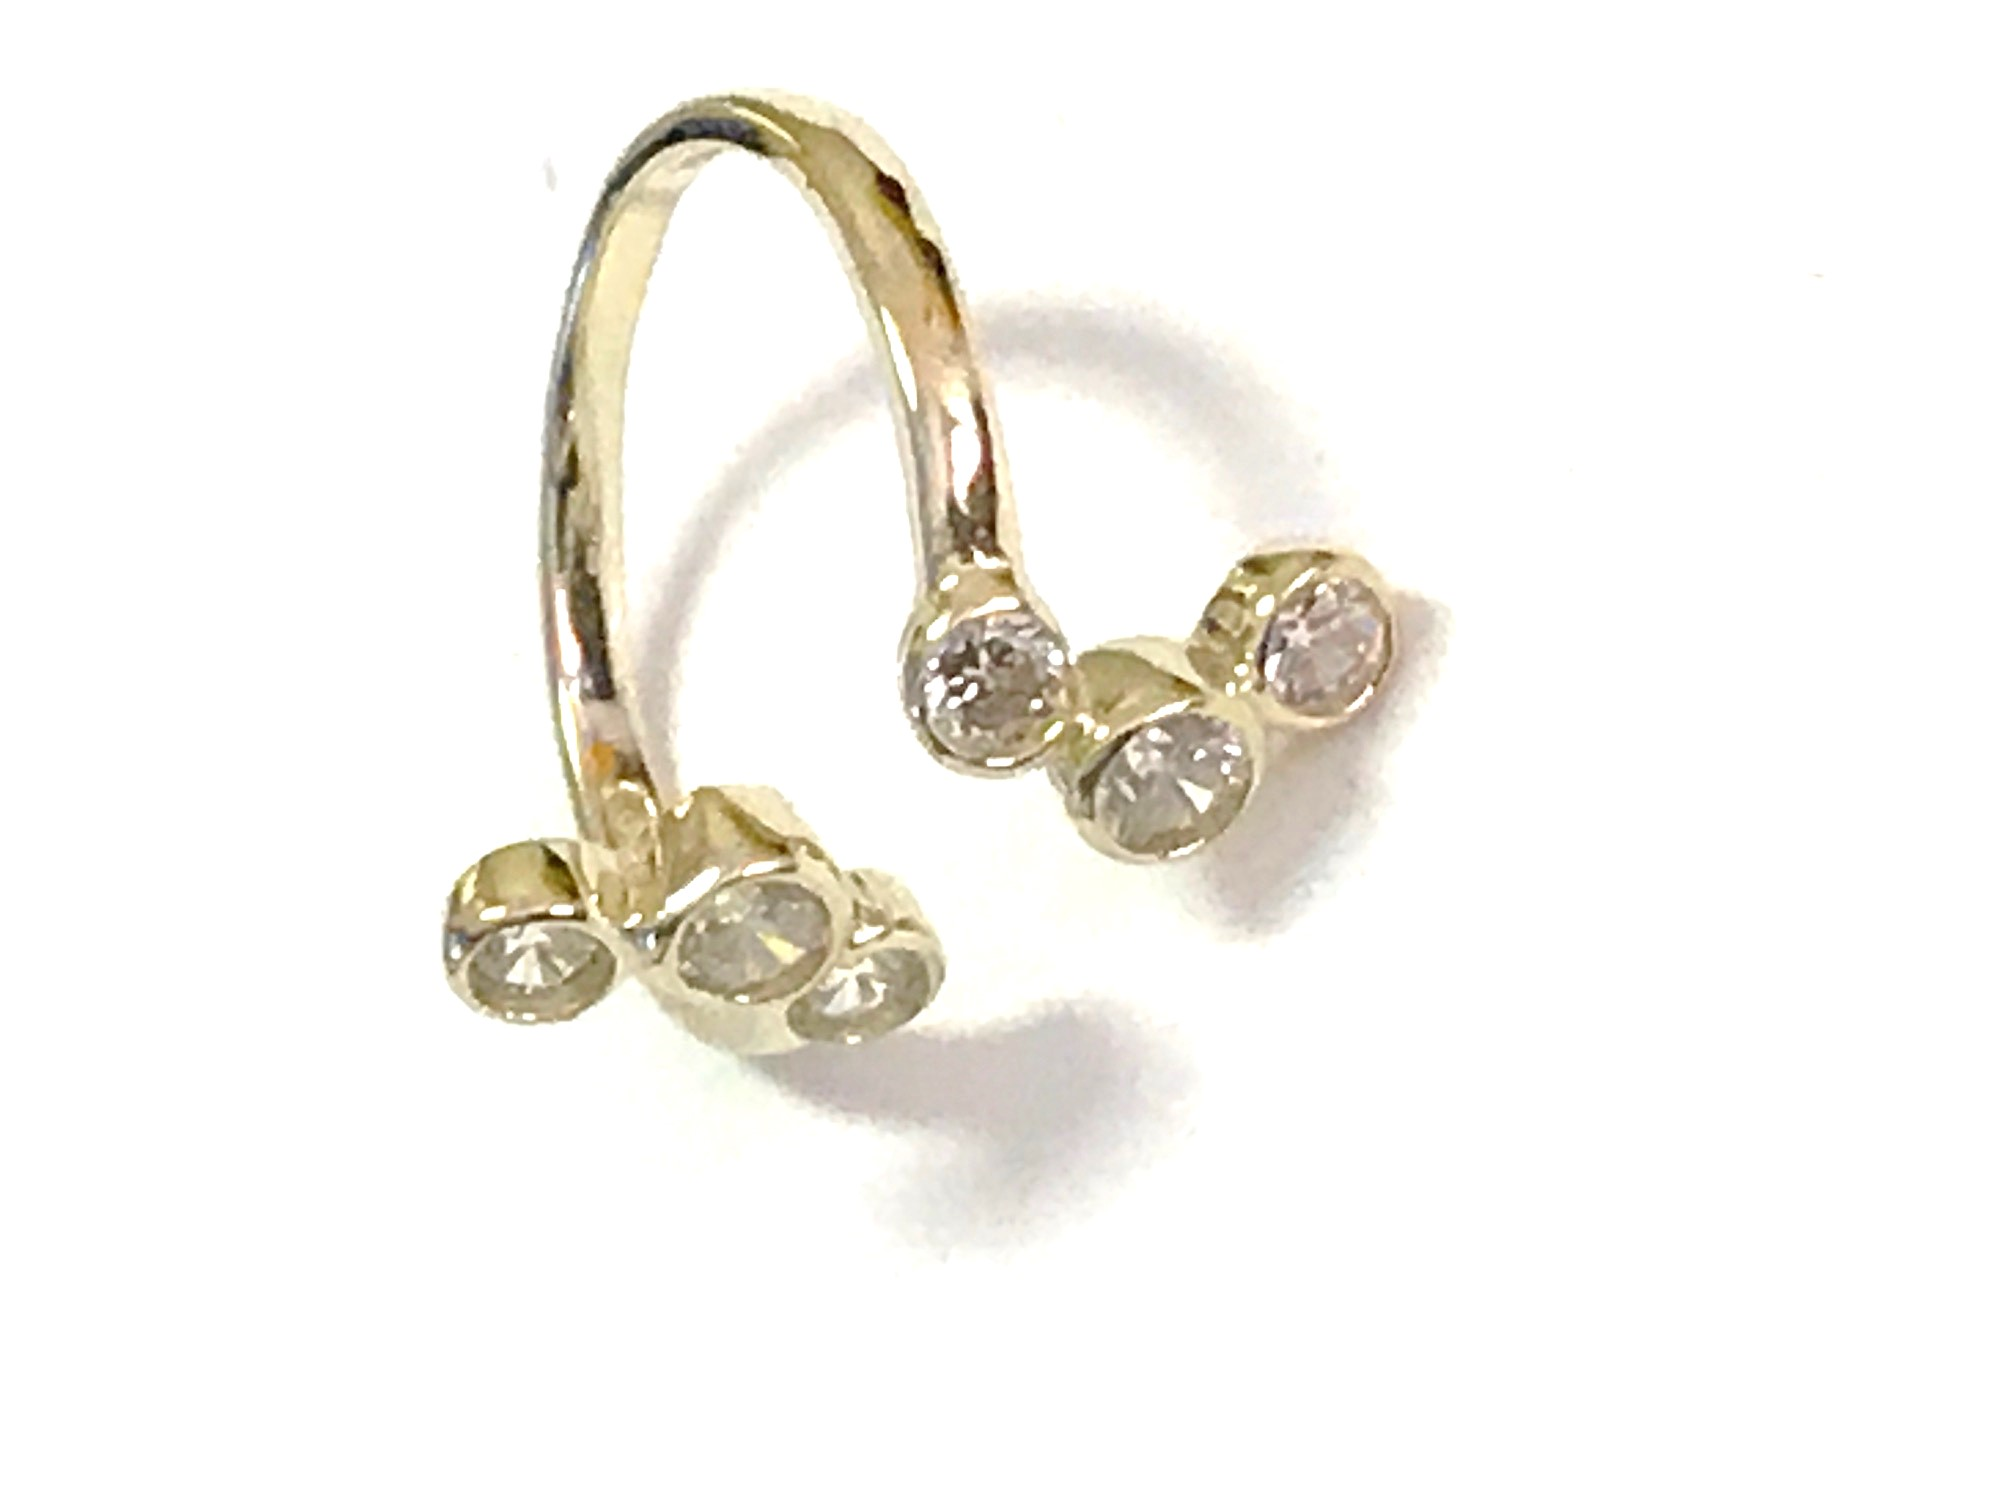 Toe ring - 10K yellow Gold & cubic zirconia